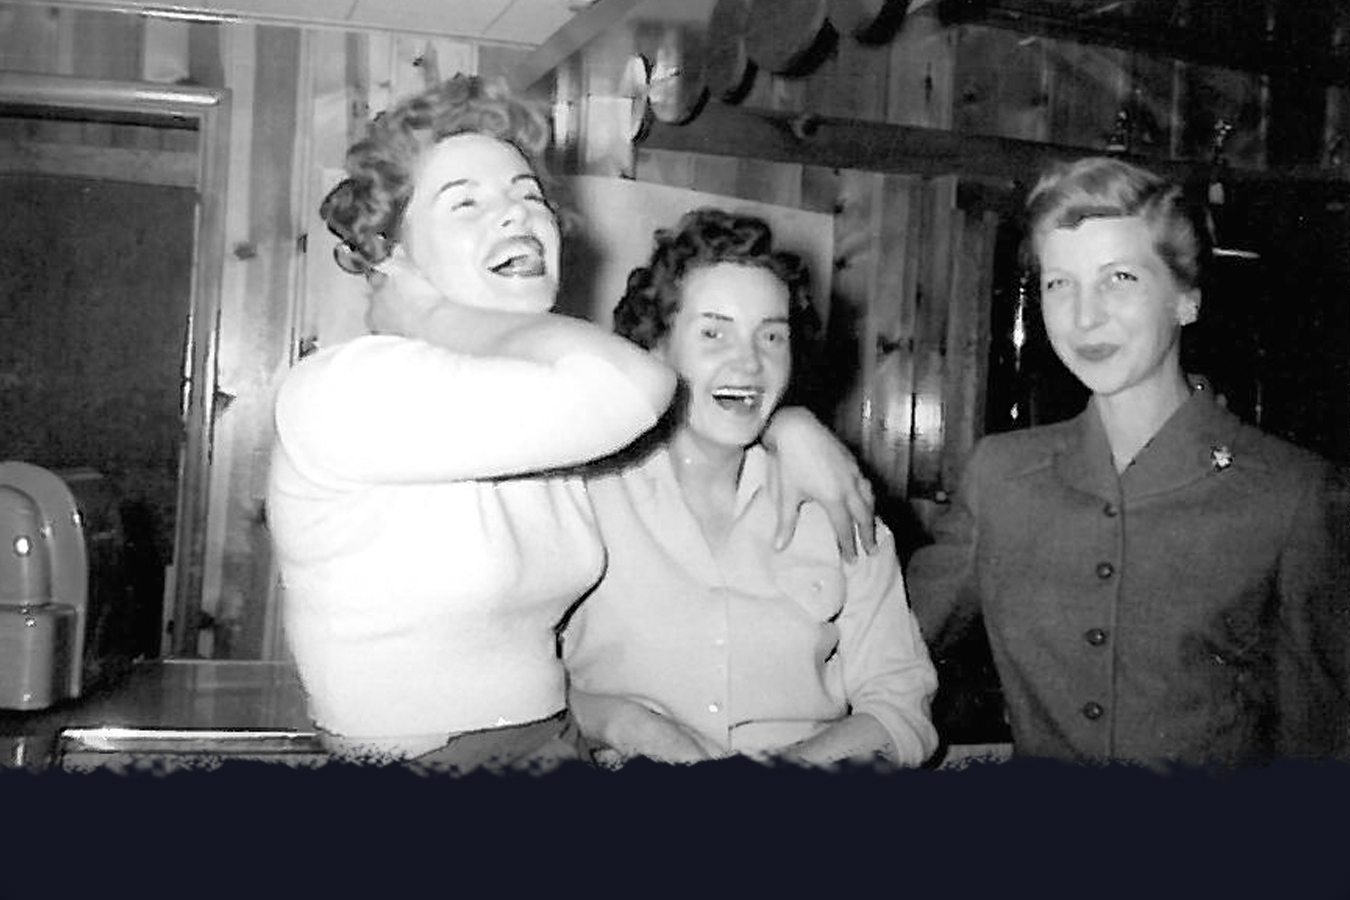 Wednesdays have always been Ladies Day at the Club. And, no, the one on the left is not Marilyn Monroe.